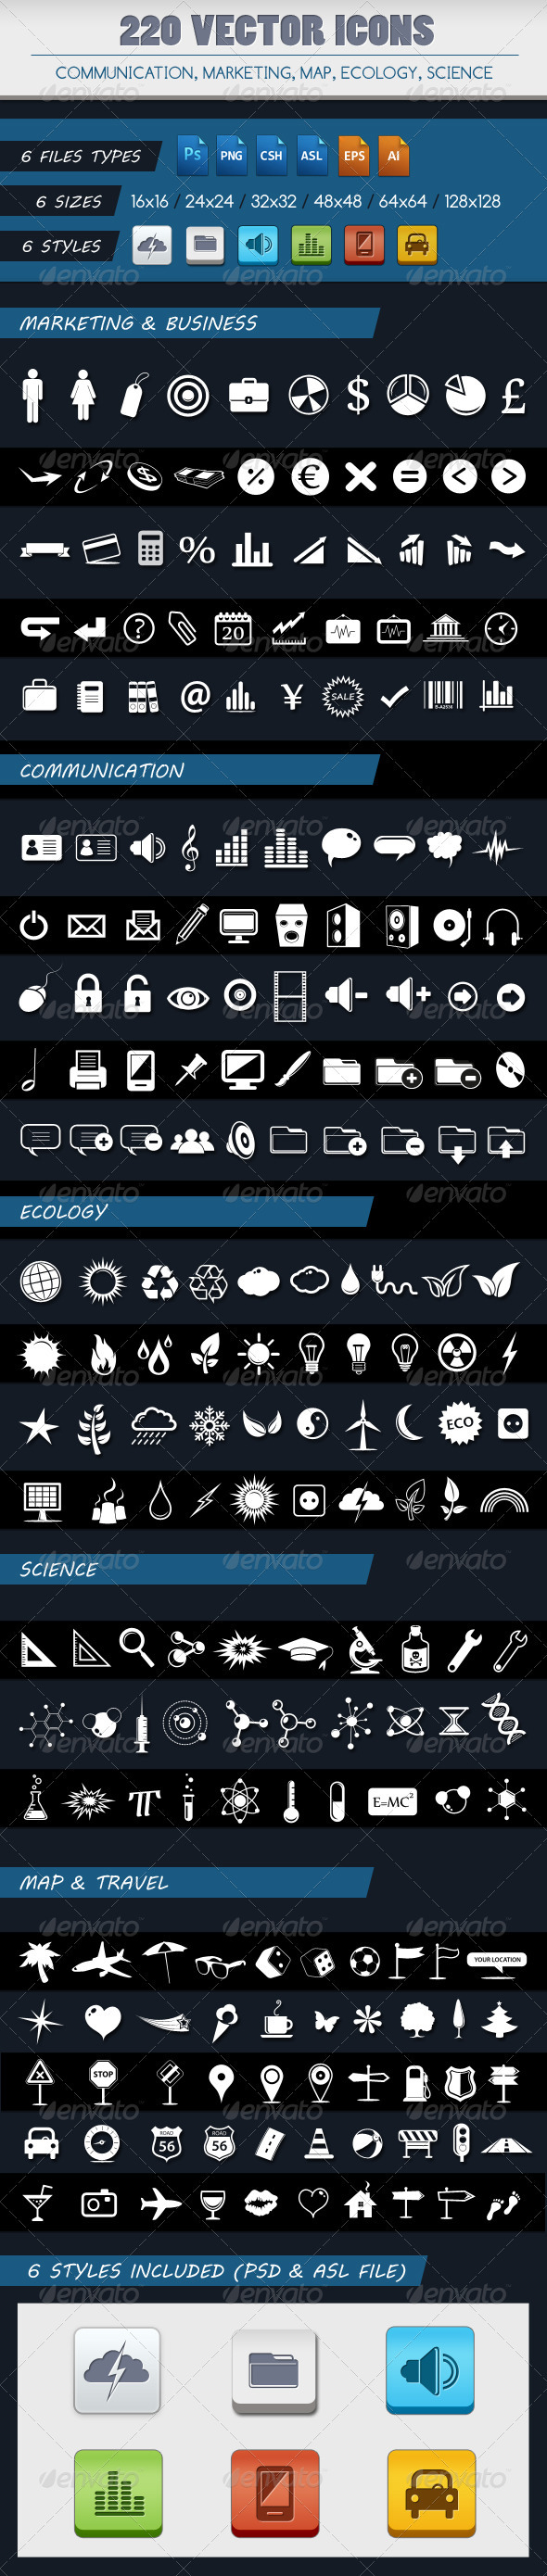 GraphicRiver 220 VECTOR ICONS OF 5 CATEGORIES 2498338